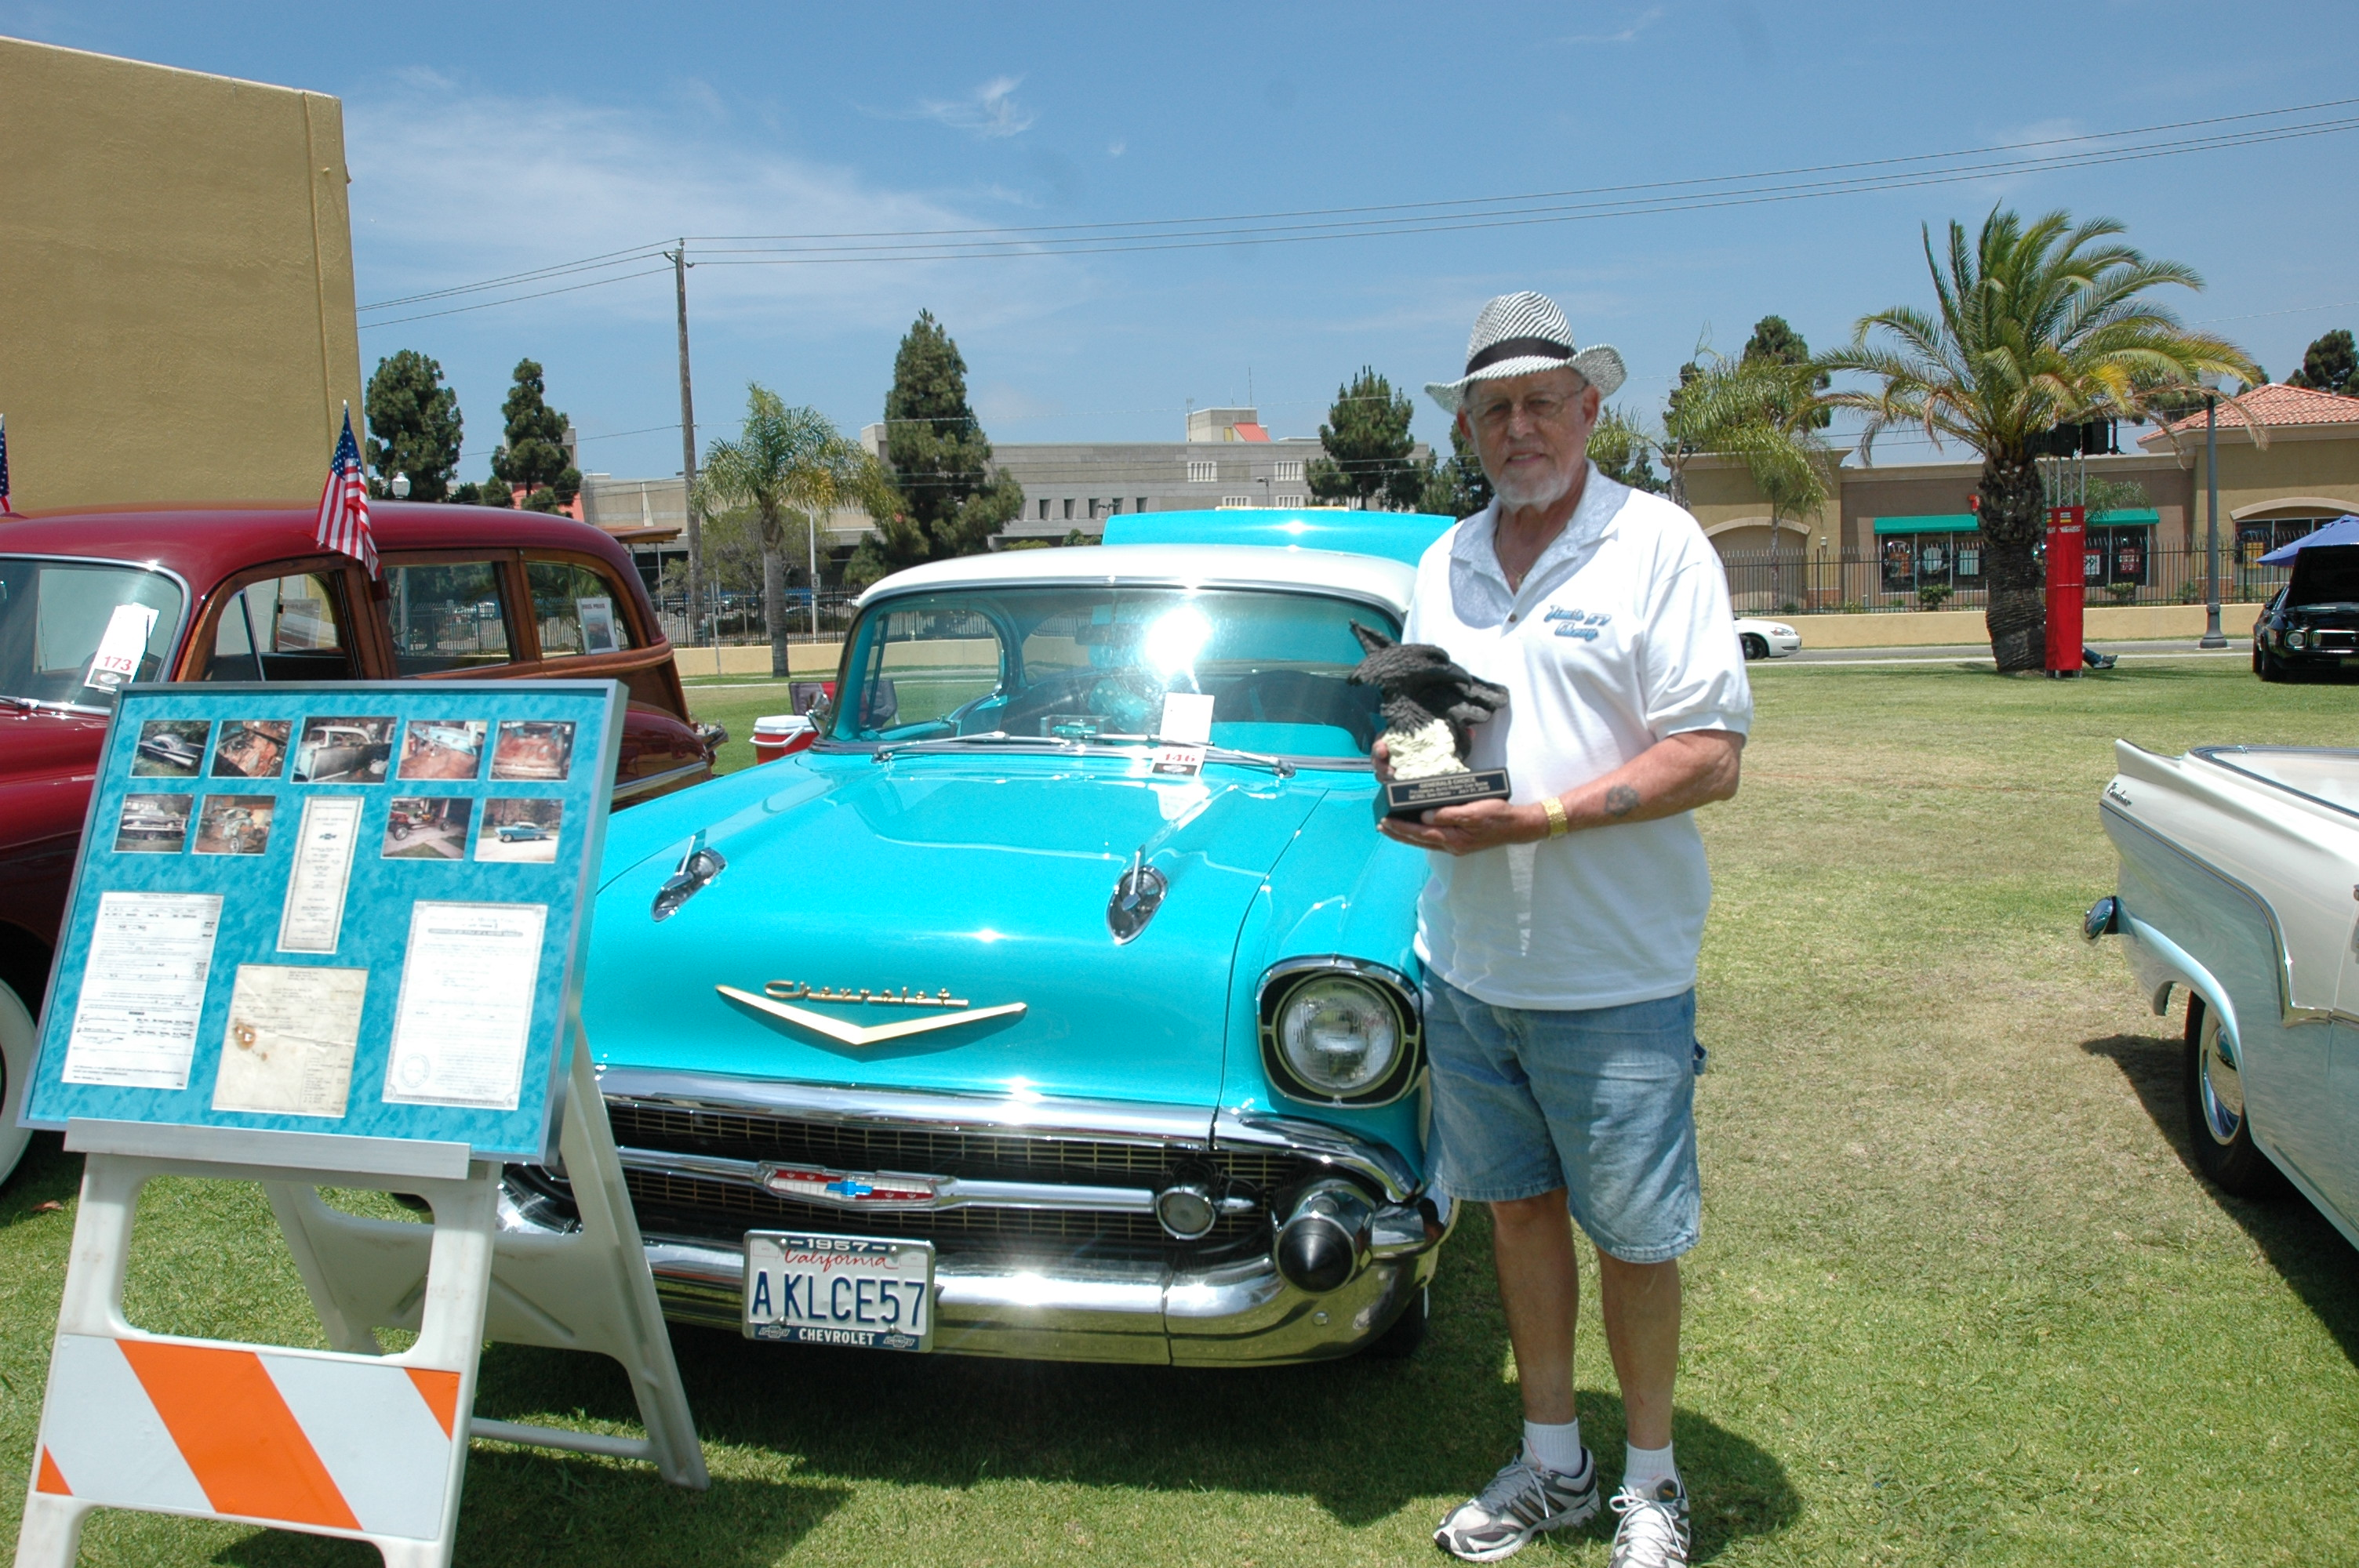 Jim Casey of the South Bay Cruisers car club poses with his car, a restored